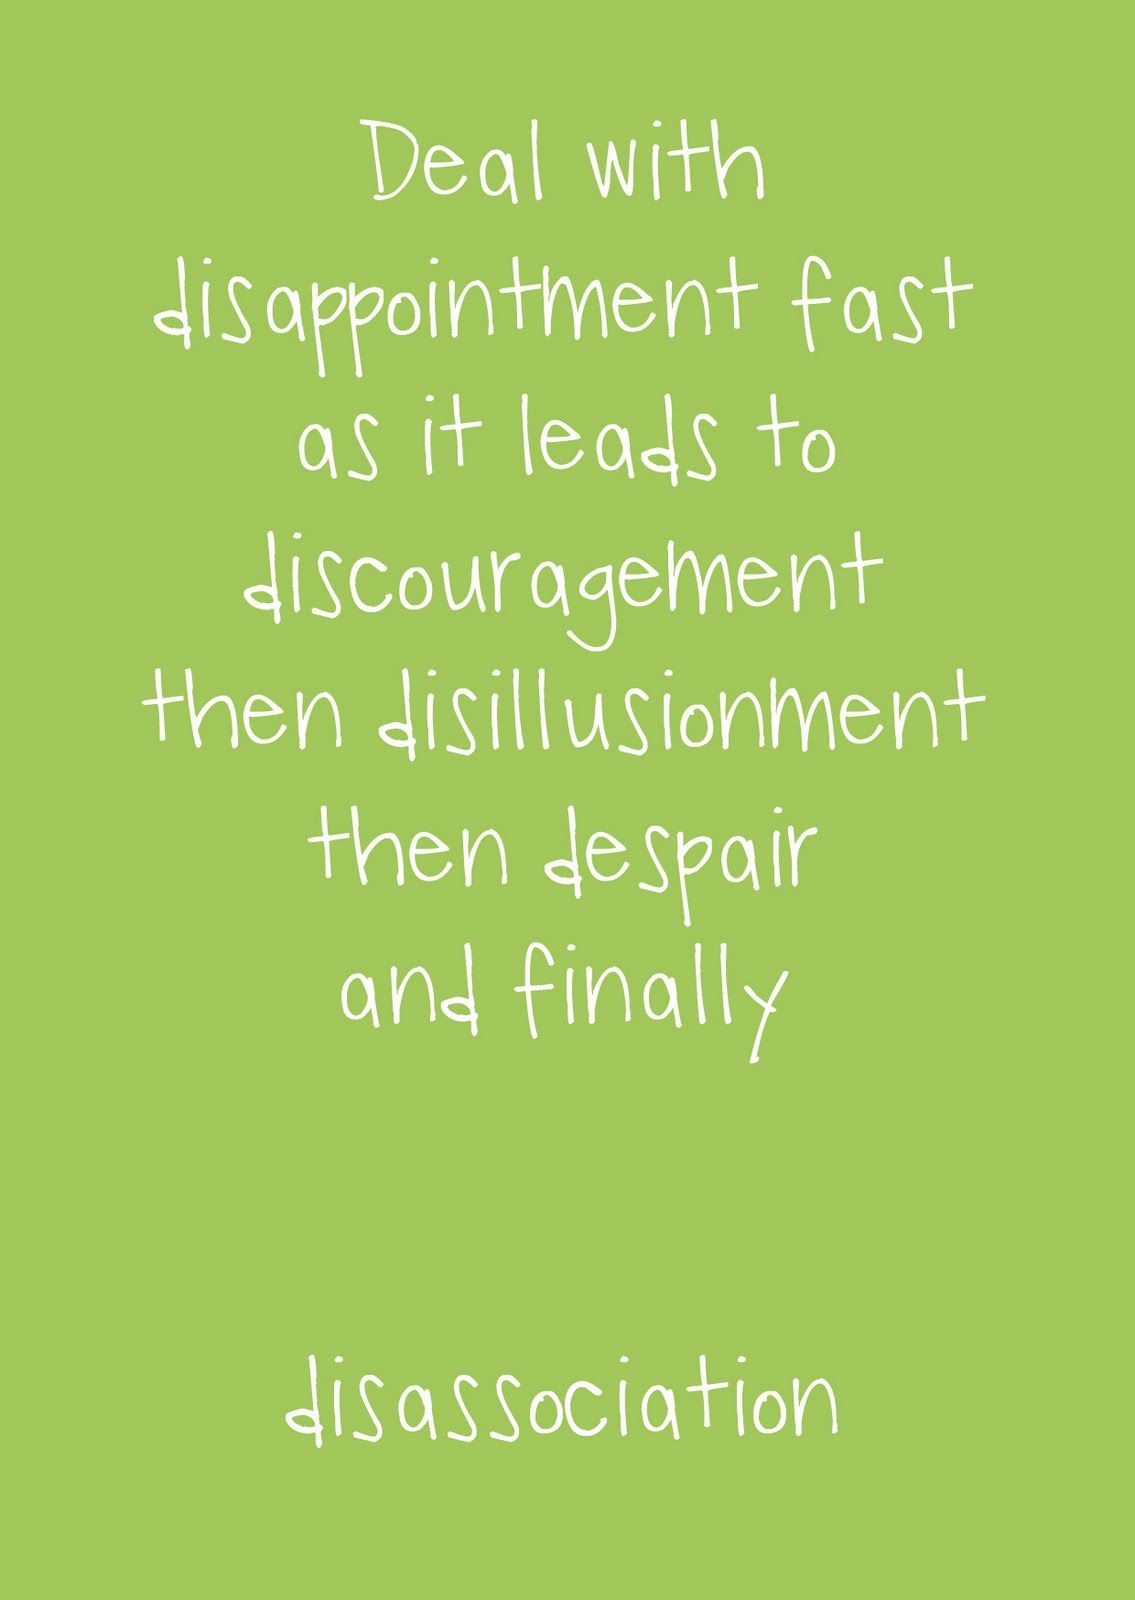 Deal with disappointment fast as it leads to discouragement, then  disillusionment, then despair,